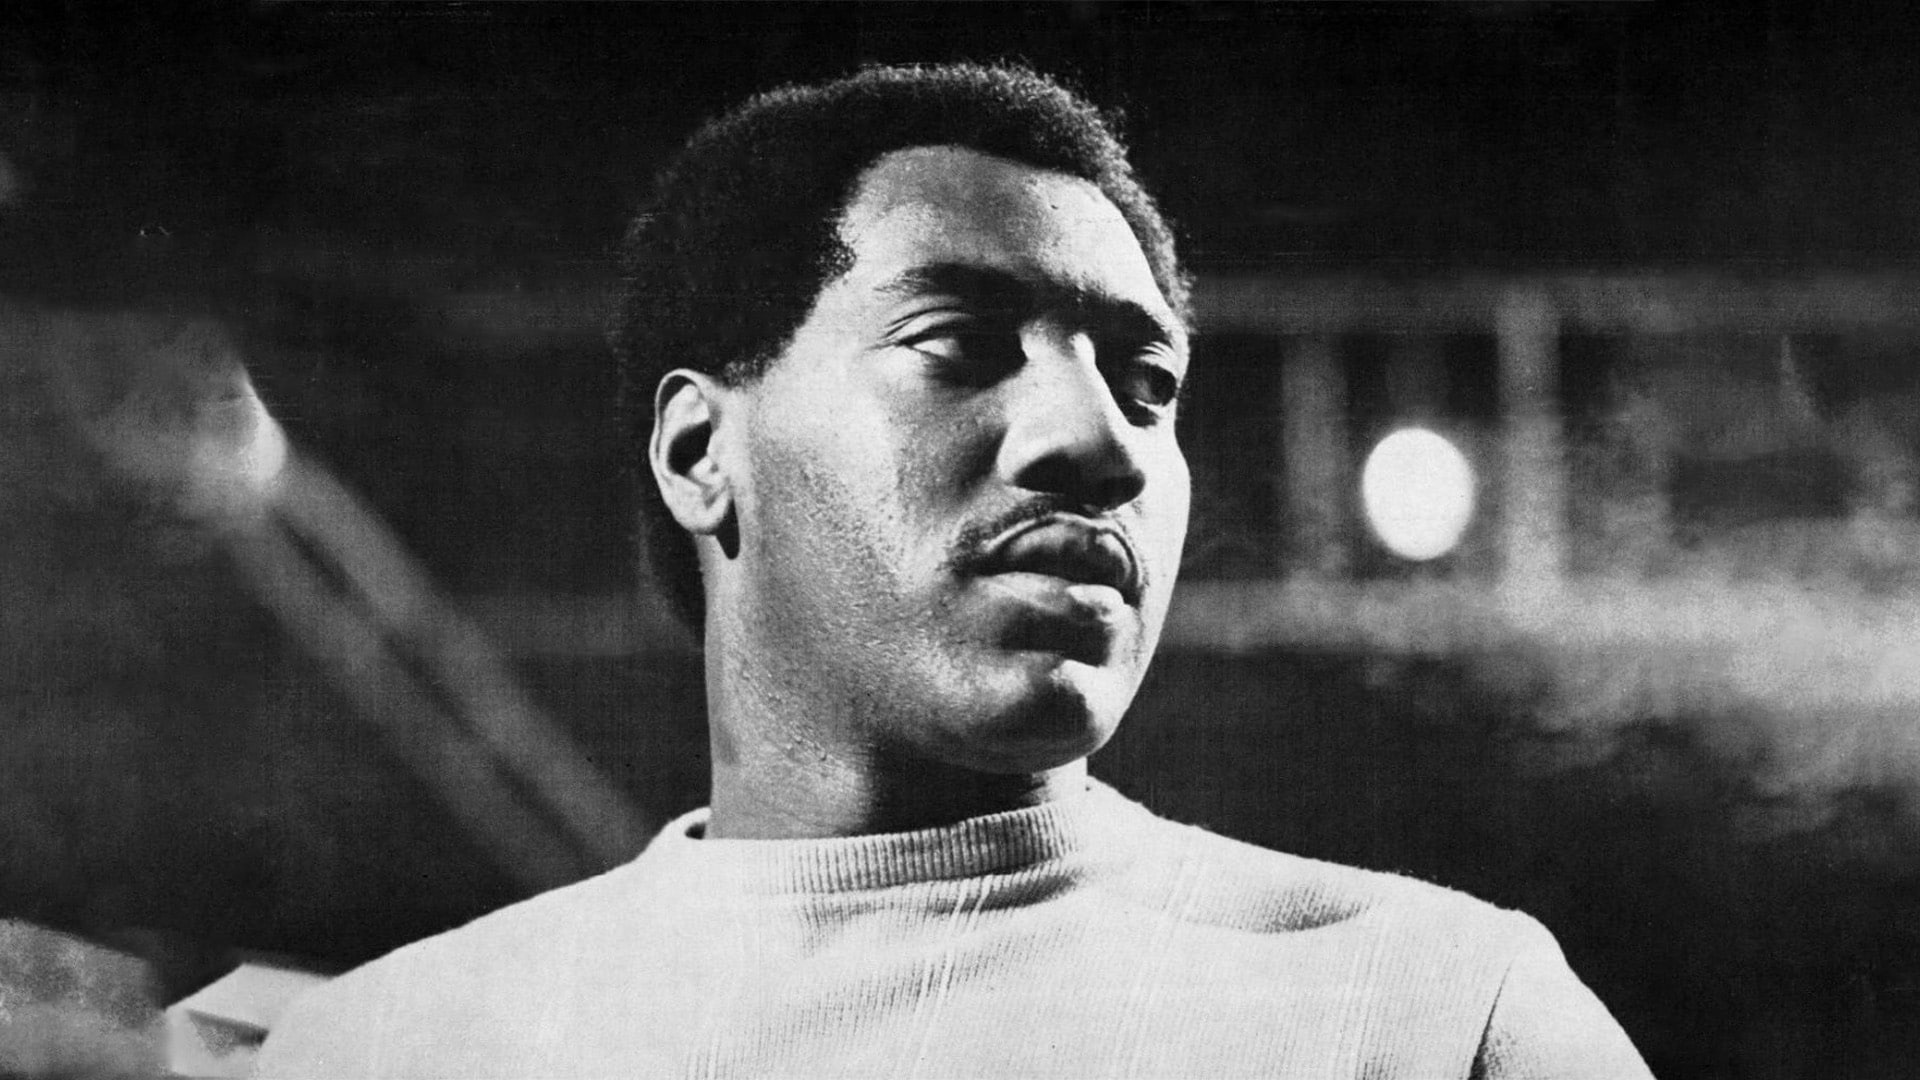 Otis Redding - A Change Is Gonna Come